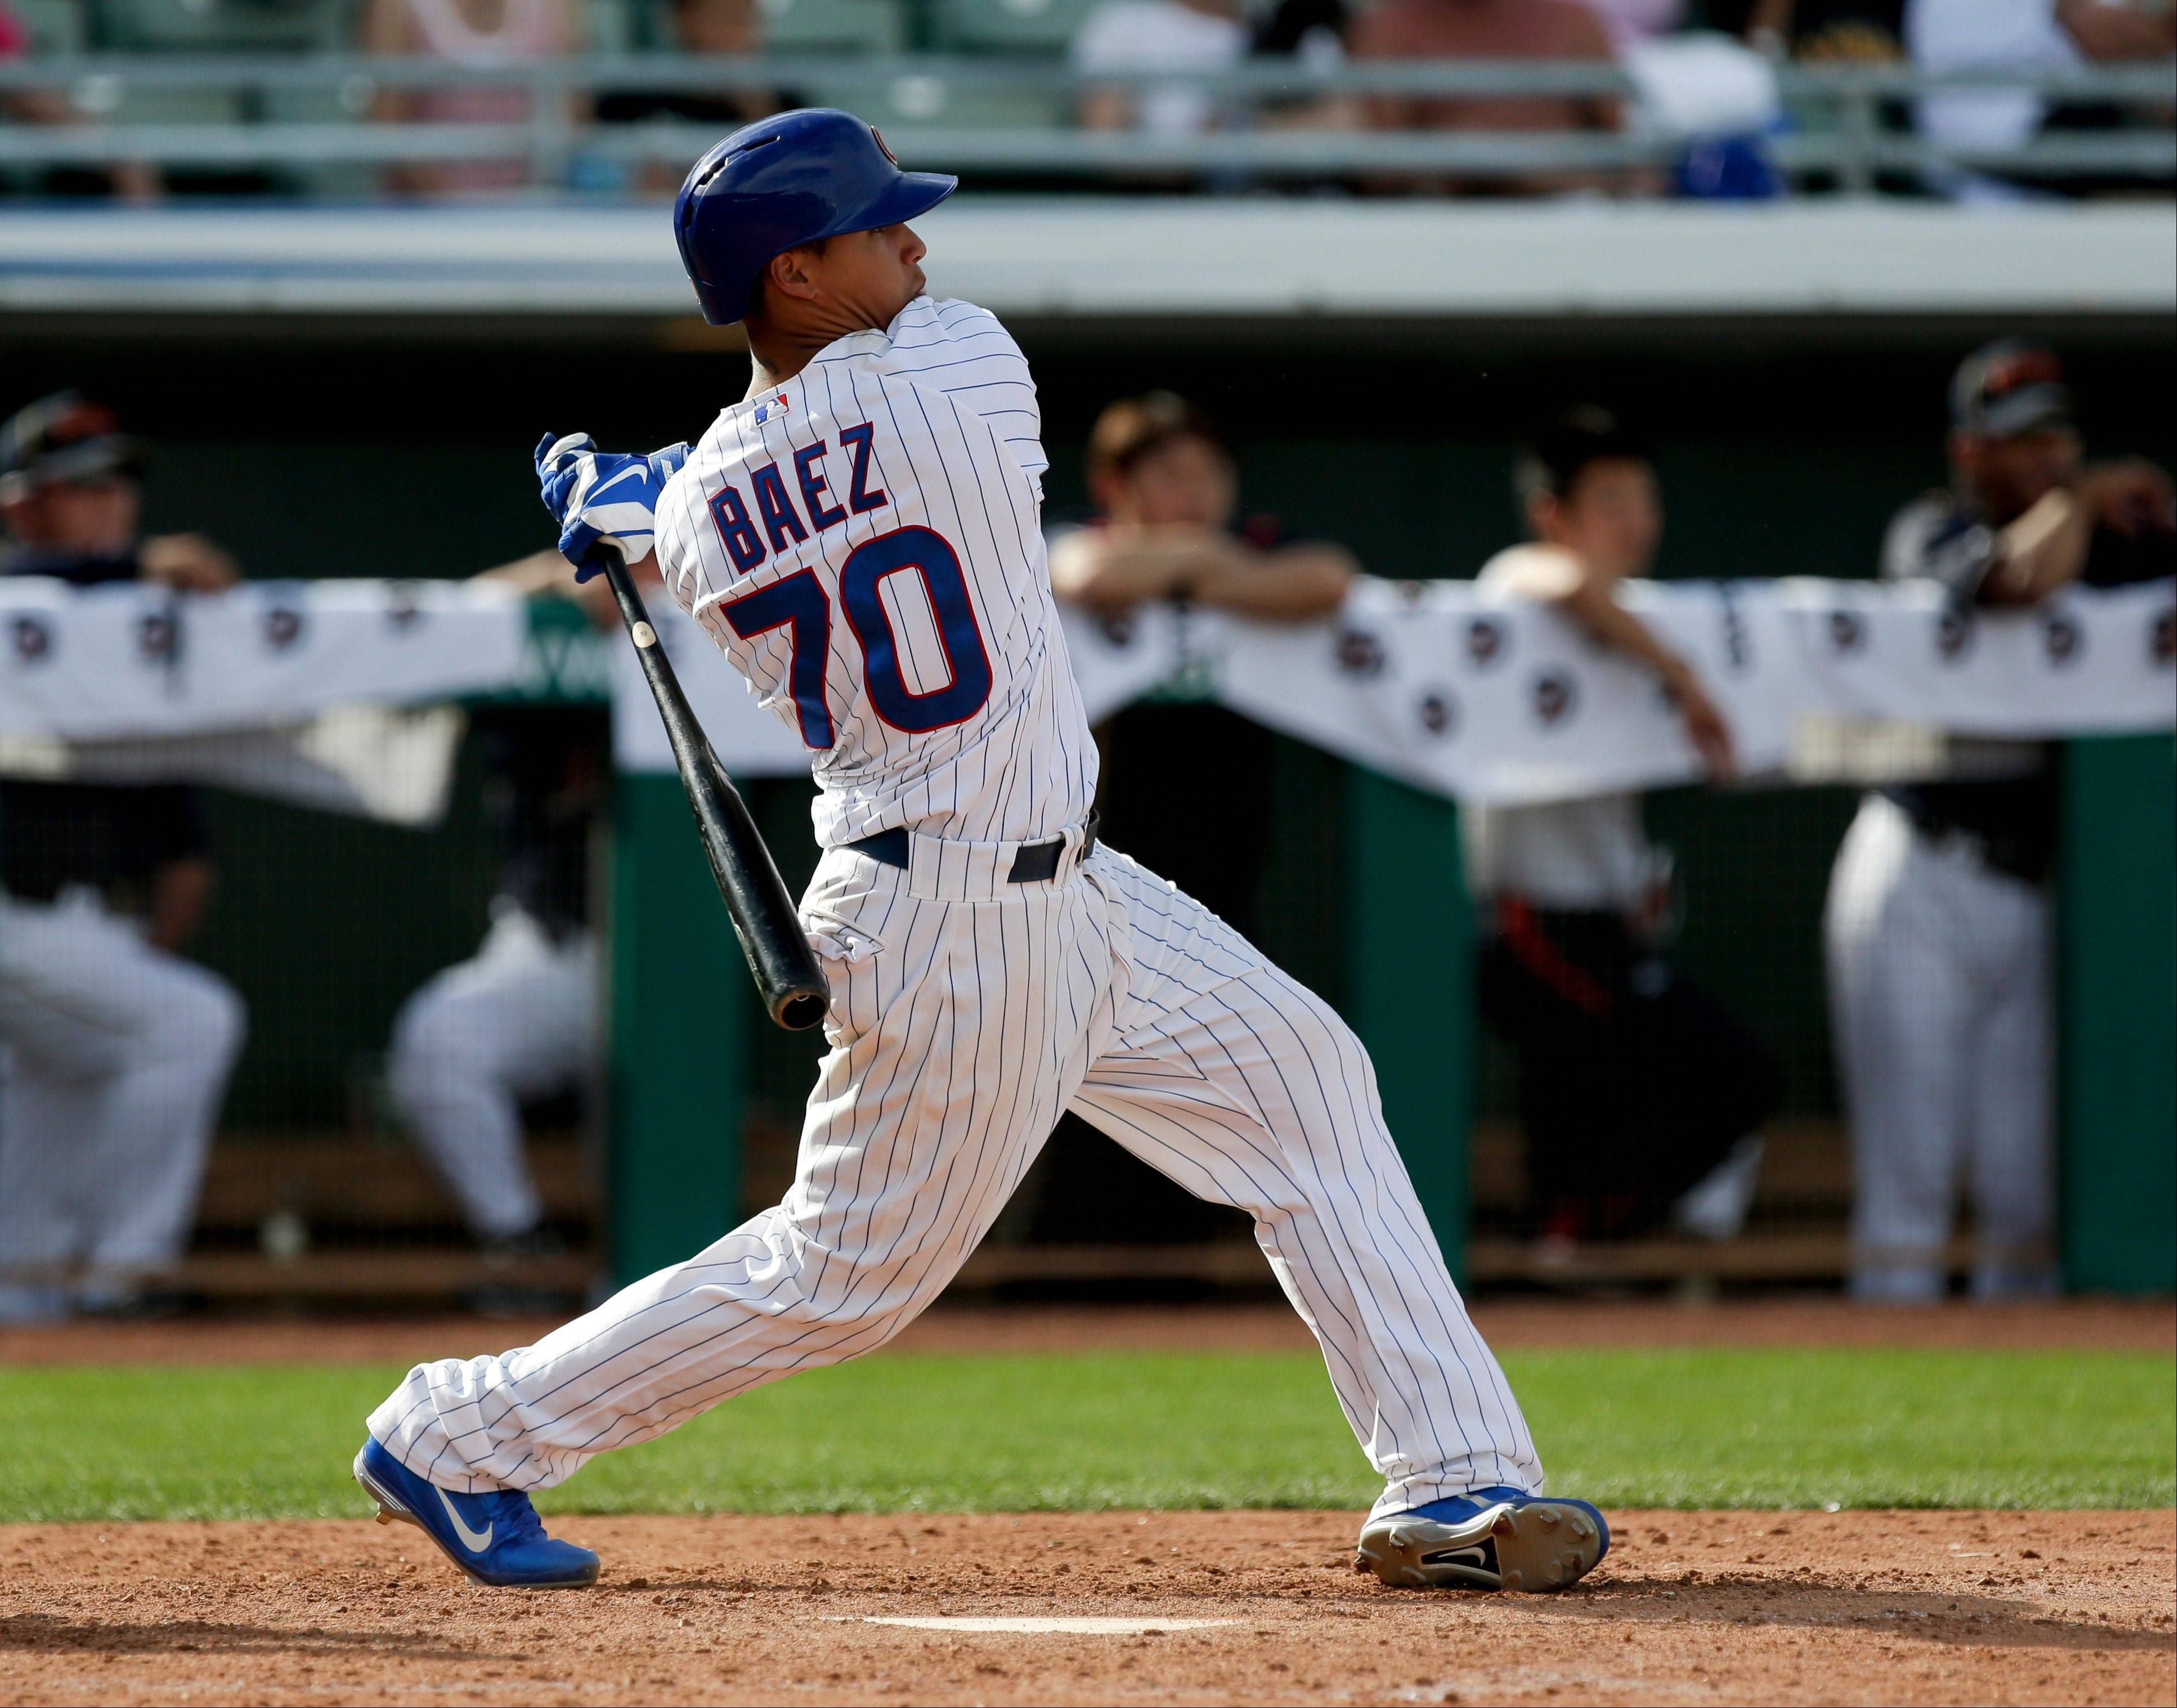 Chicago Cubs' Javier Baez watches his walk off two-run home run against Japan during the bottom the ninth inning of an exhibition spring training baseball game in Mesa, Ariz. Friday, March 15, 2013.